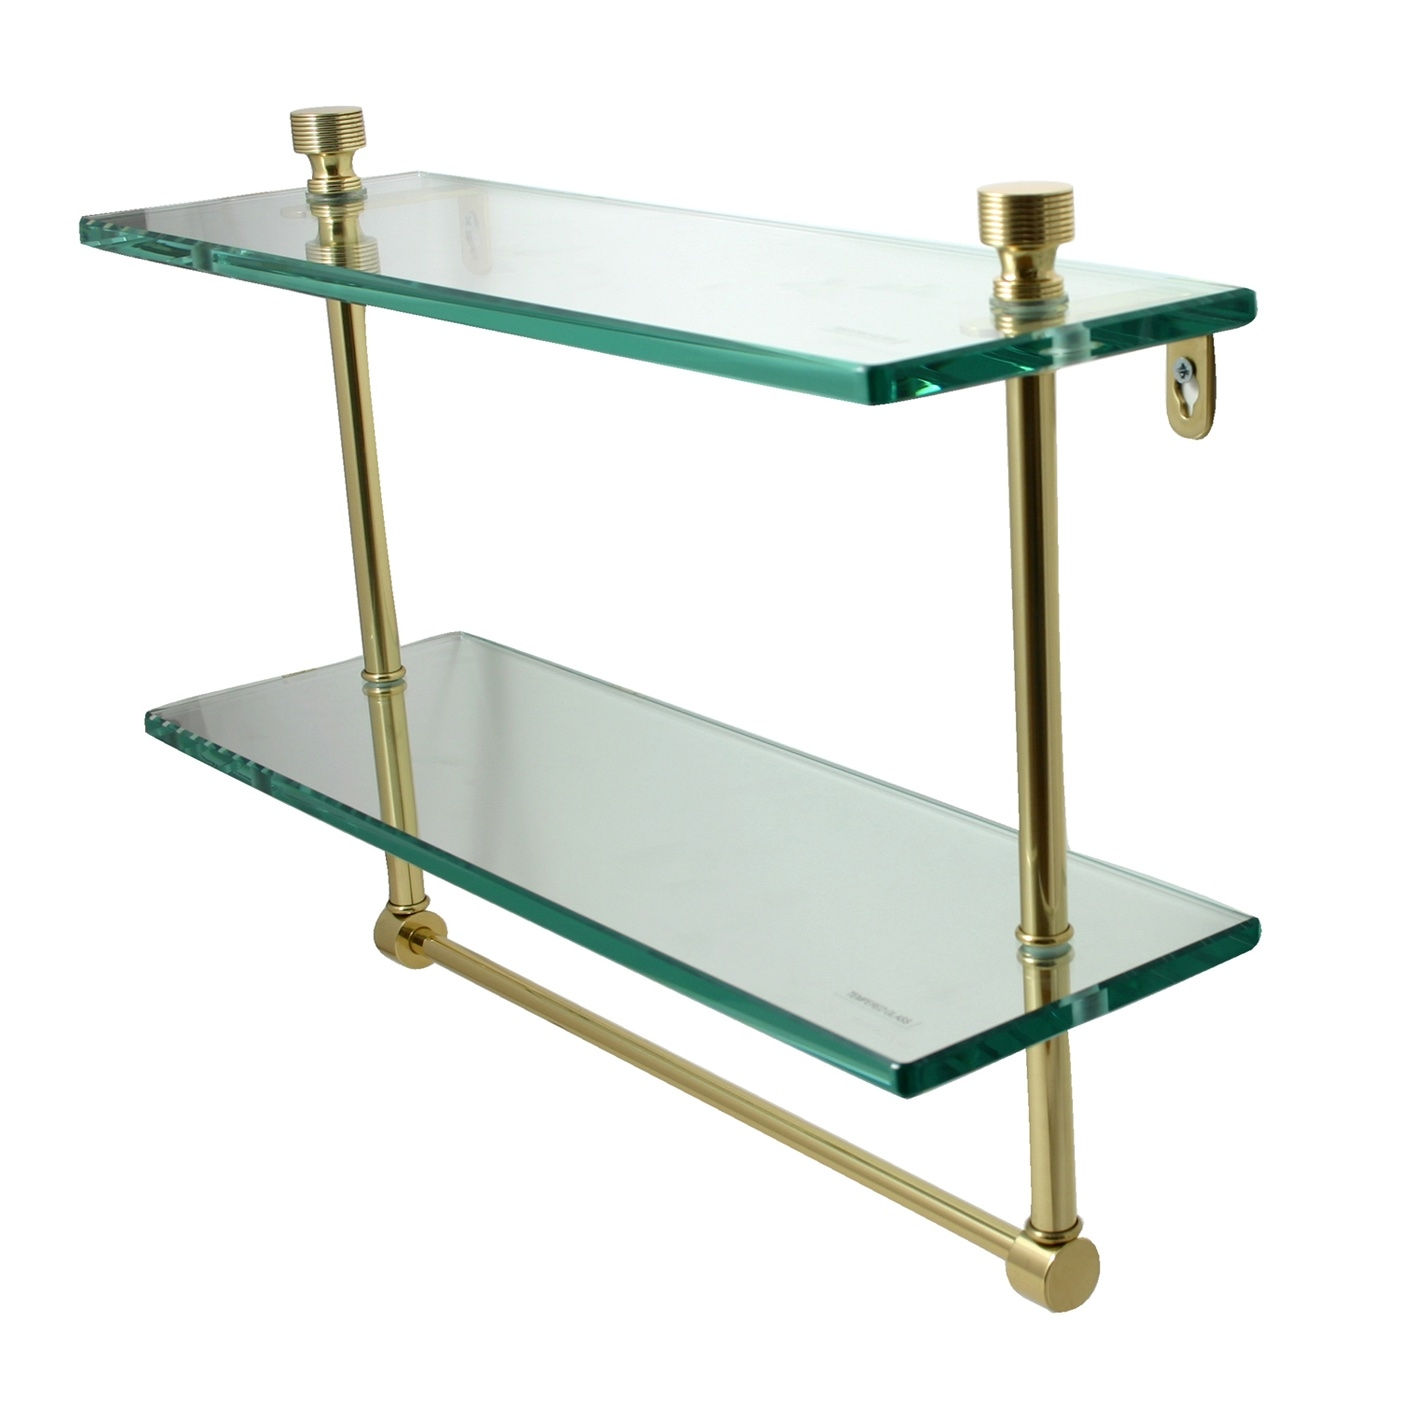 Suspended Glass Shelf Glass Cable Shelving Supporting Bread Pertaining To Cable Suspended Glass Shelving (View 13 of 15)